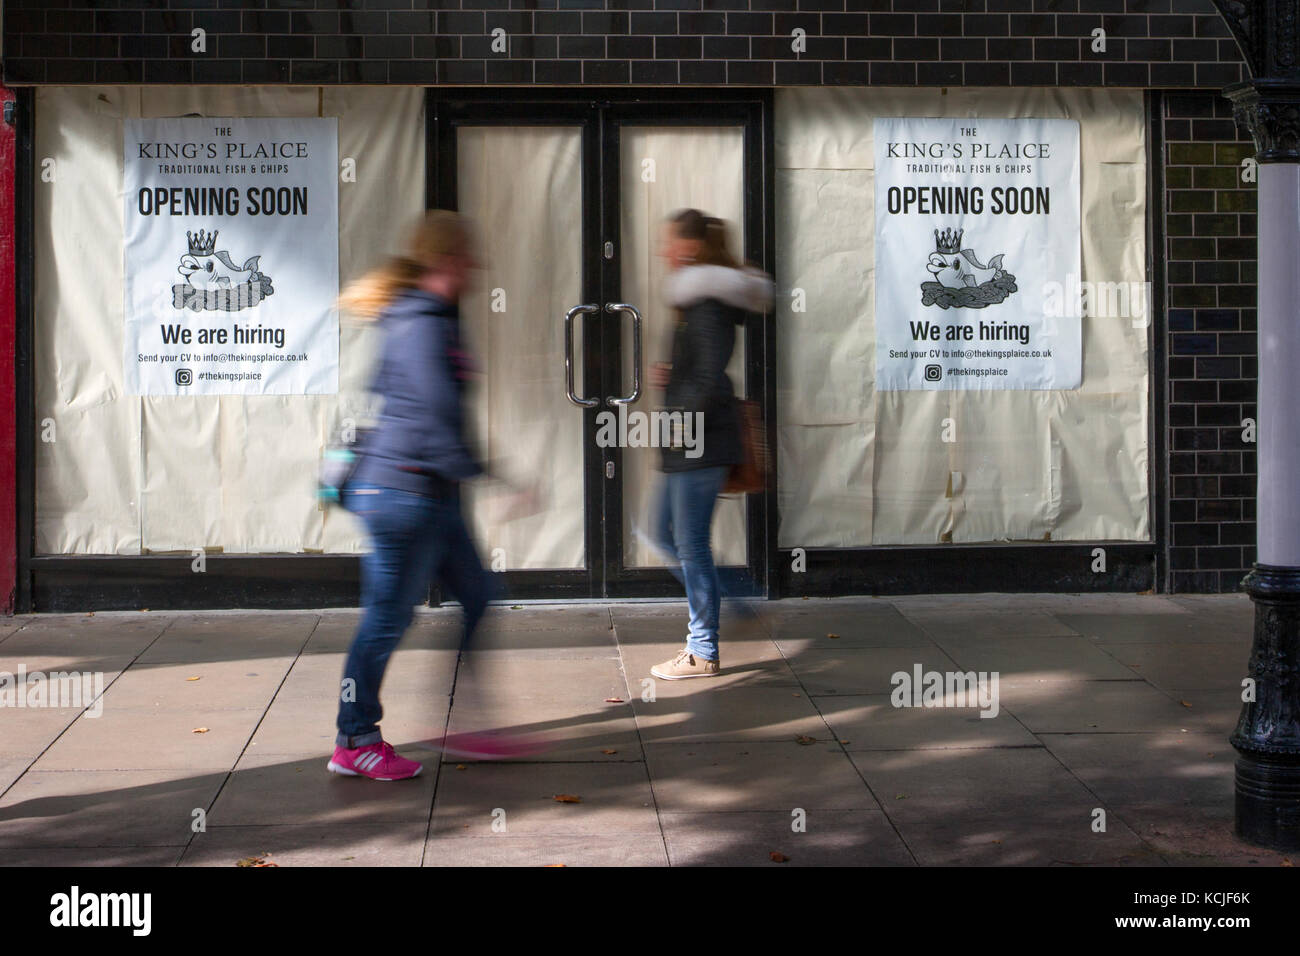 Out of focus figures passing, Businesses in decline, CBD Central business district, Prime Location, Retail Units, - Stock Image